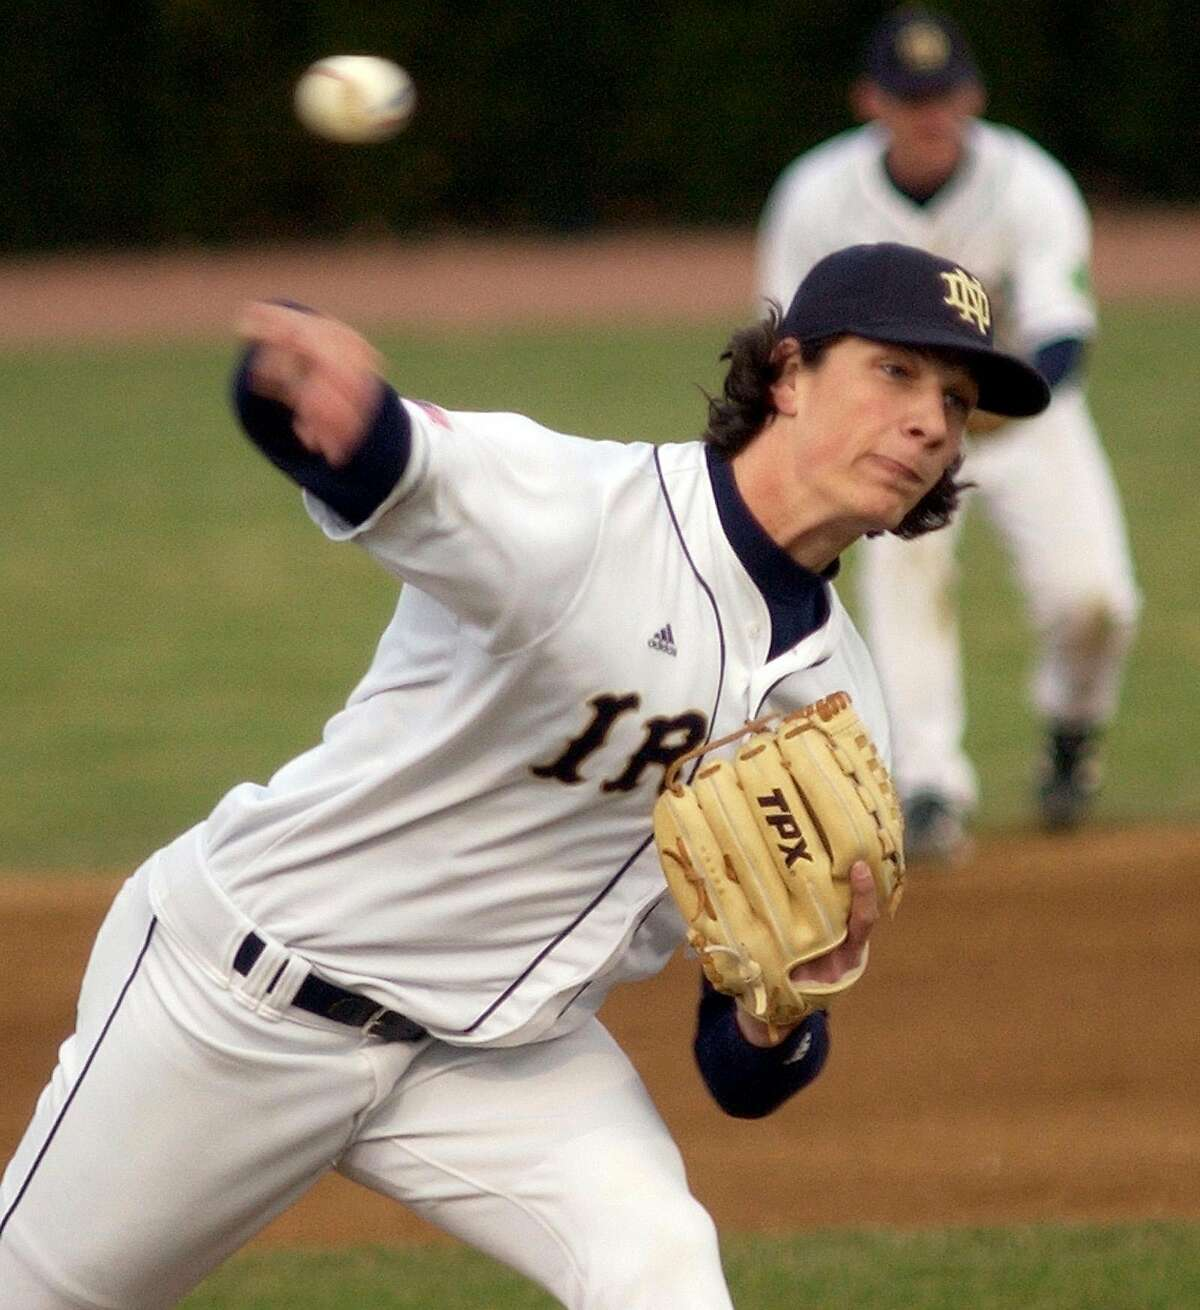 ** FILE ** Notre Dame pitcher Jeff Samardzija throws a pitch during action in this March 31, 2006 file photo in South Bend, Ind. Samardzija decided to give up football and stay with baseball. The former Notre Dame receiver, projected as a first-round pick in the upcoming NFL draft, agreed Friday to a $10 million, five-year contract to pitch for the Chicago Cubs. (AP Photo/Joe Raymond)